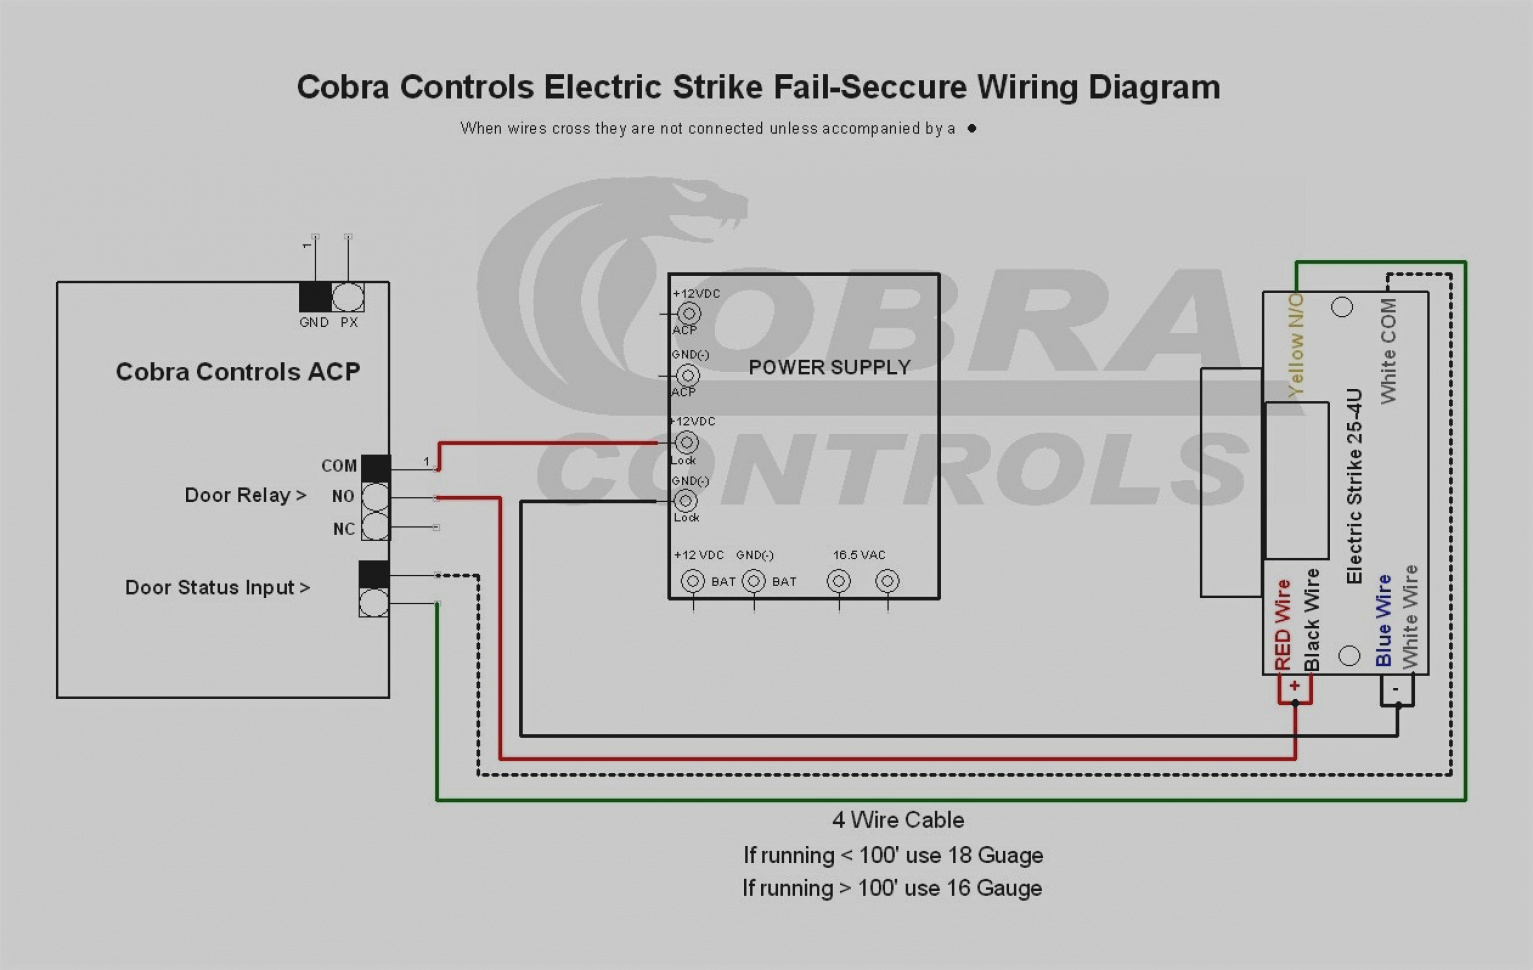 hes 1006 12 24d 630 wiring diagram Download-Hes 1006 12 24d 630 Wiring Diagram New Hes 5000 Wiring Diagram In Webtor Me 15-d